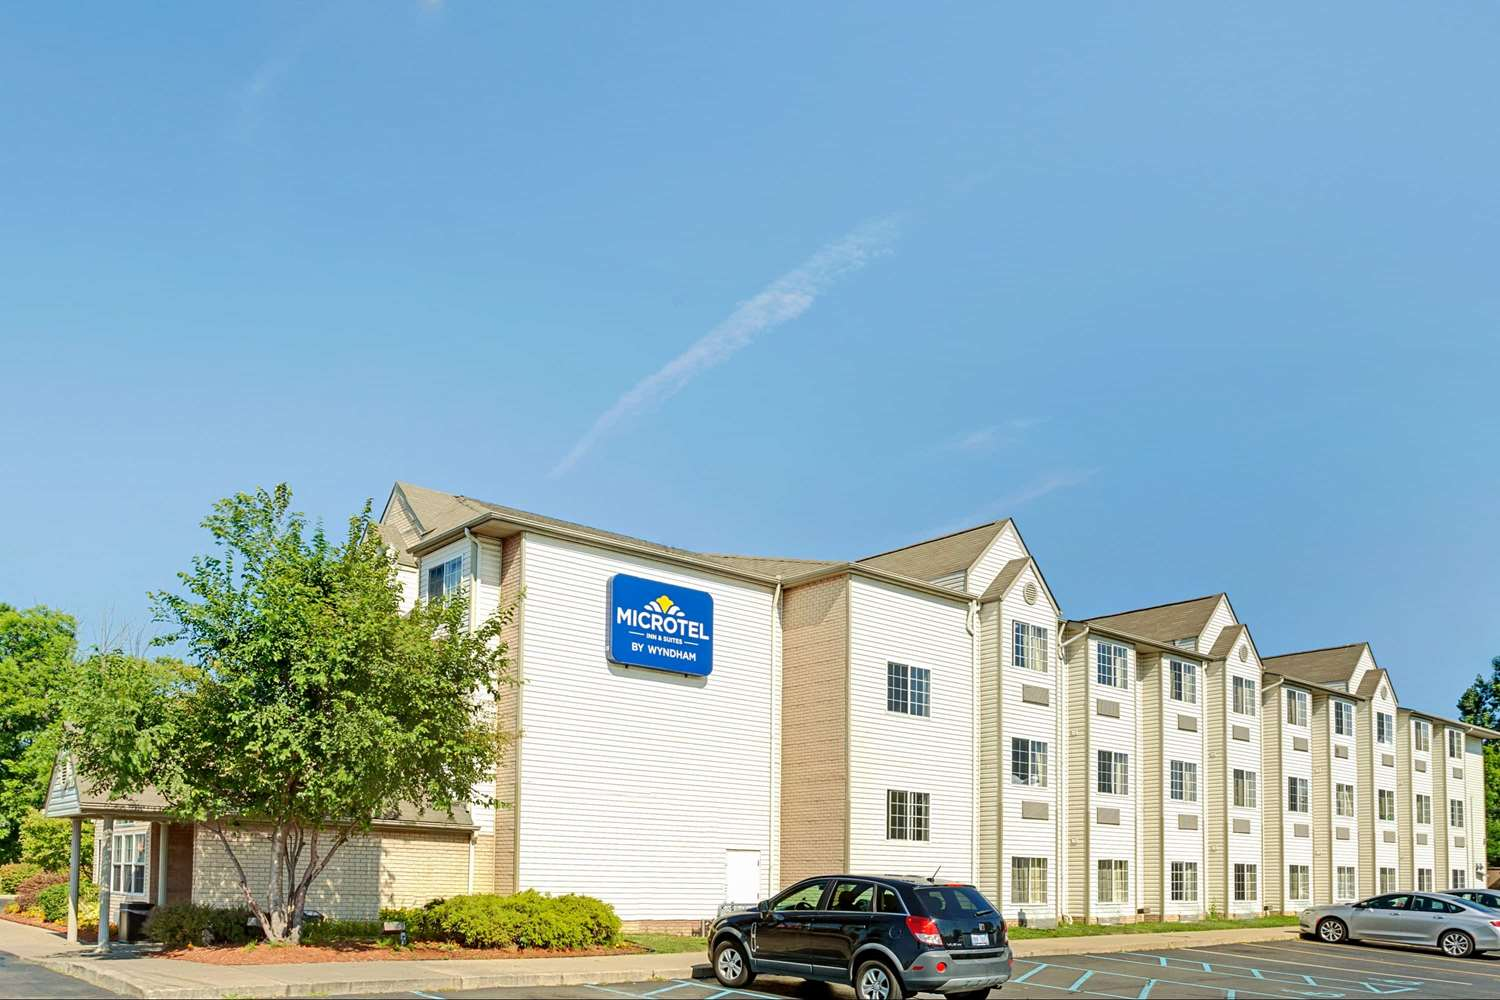 Microtel Inn & Suites by Wyndham Roseville